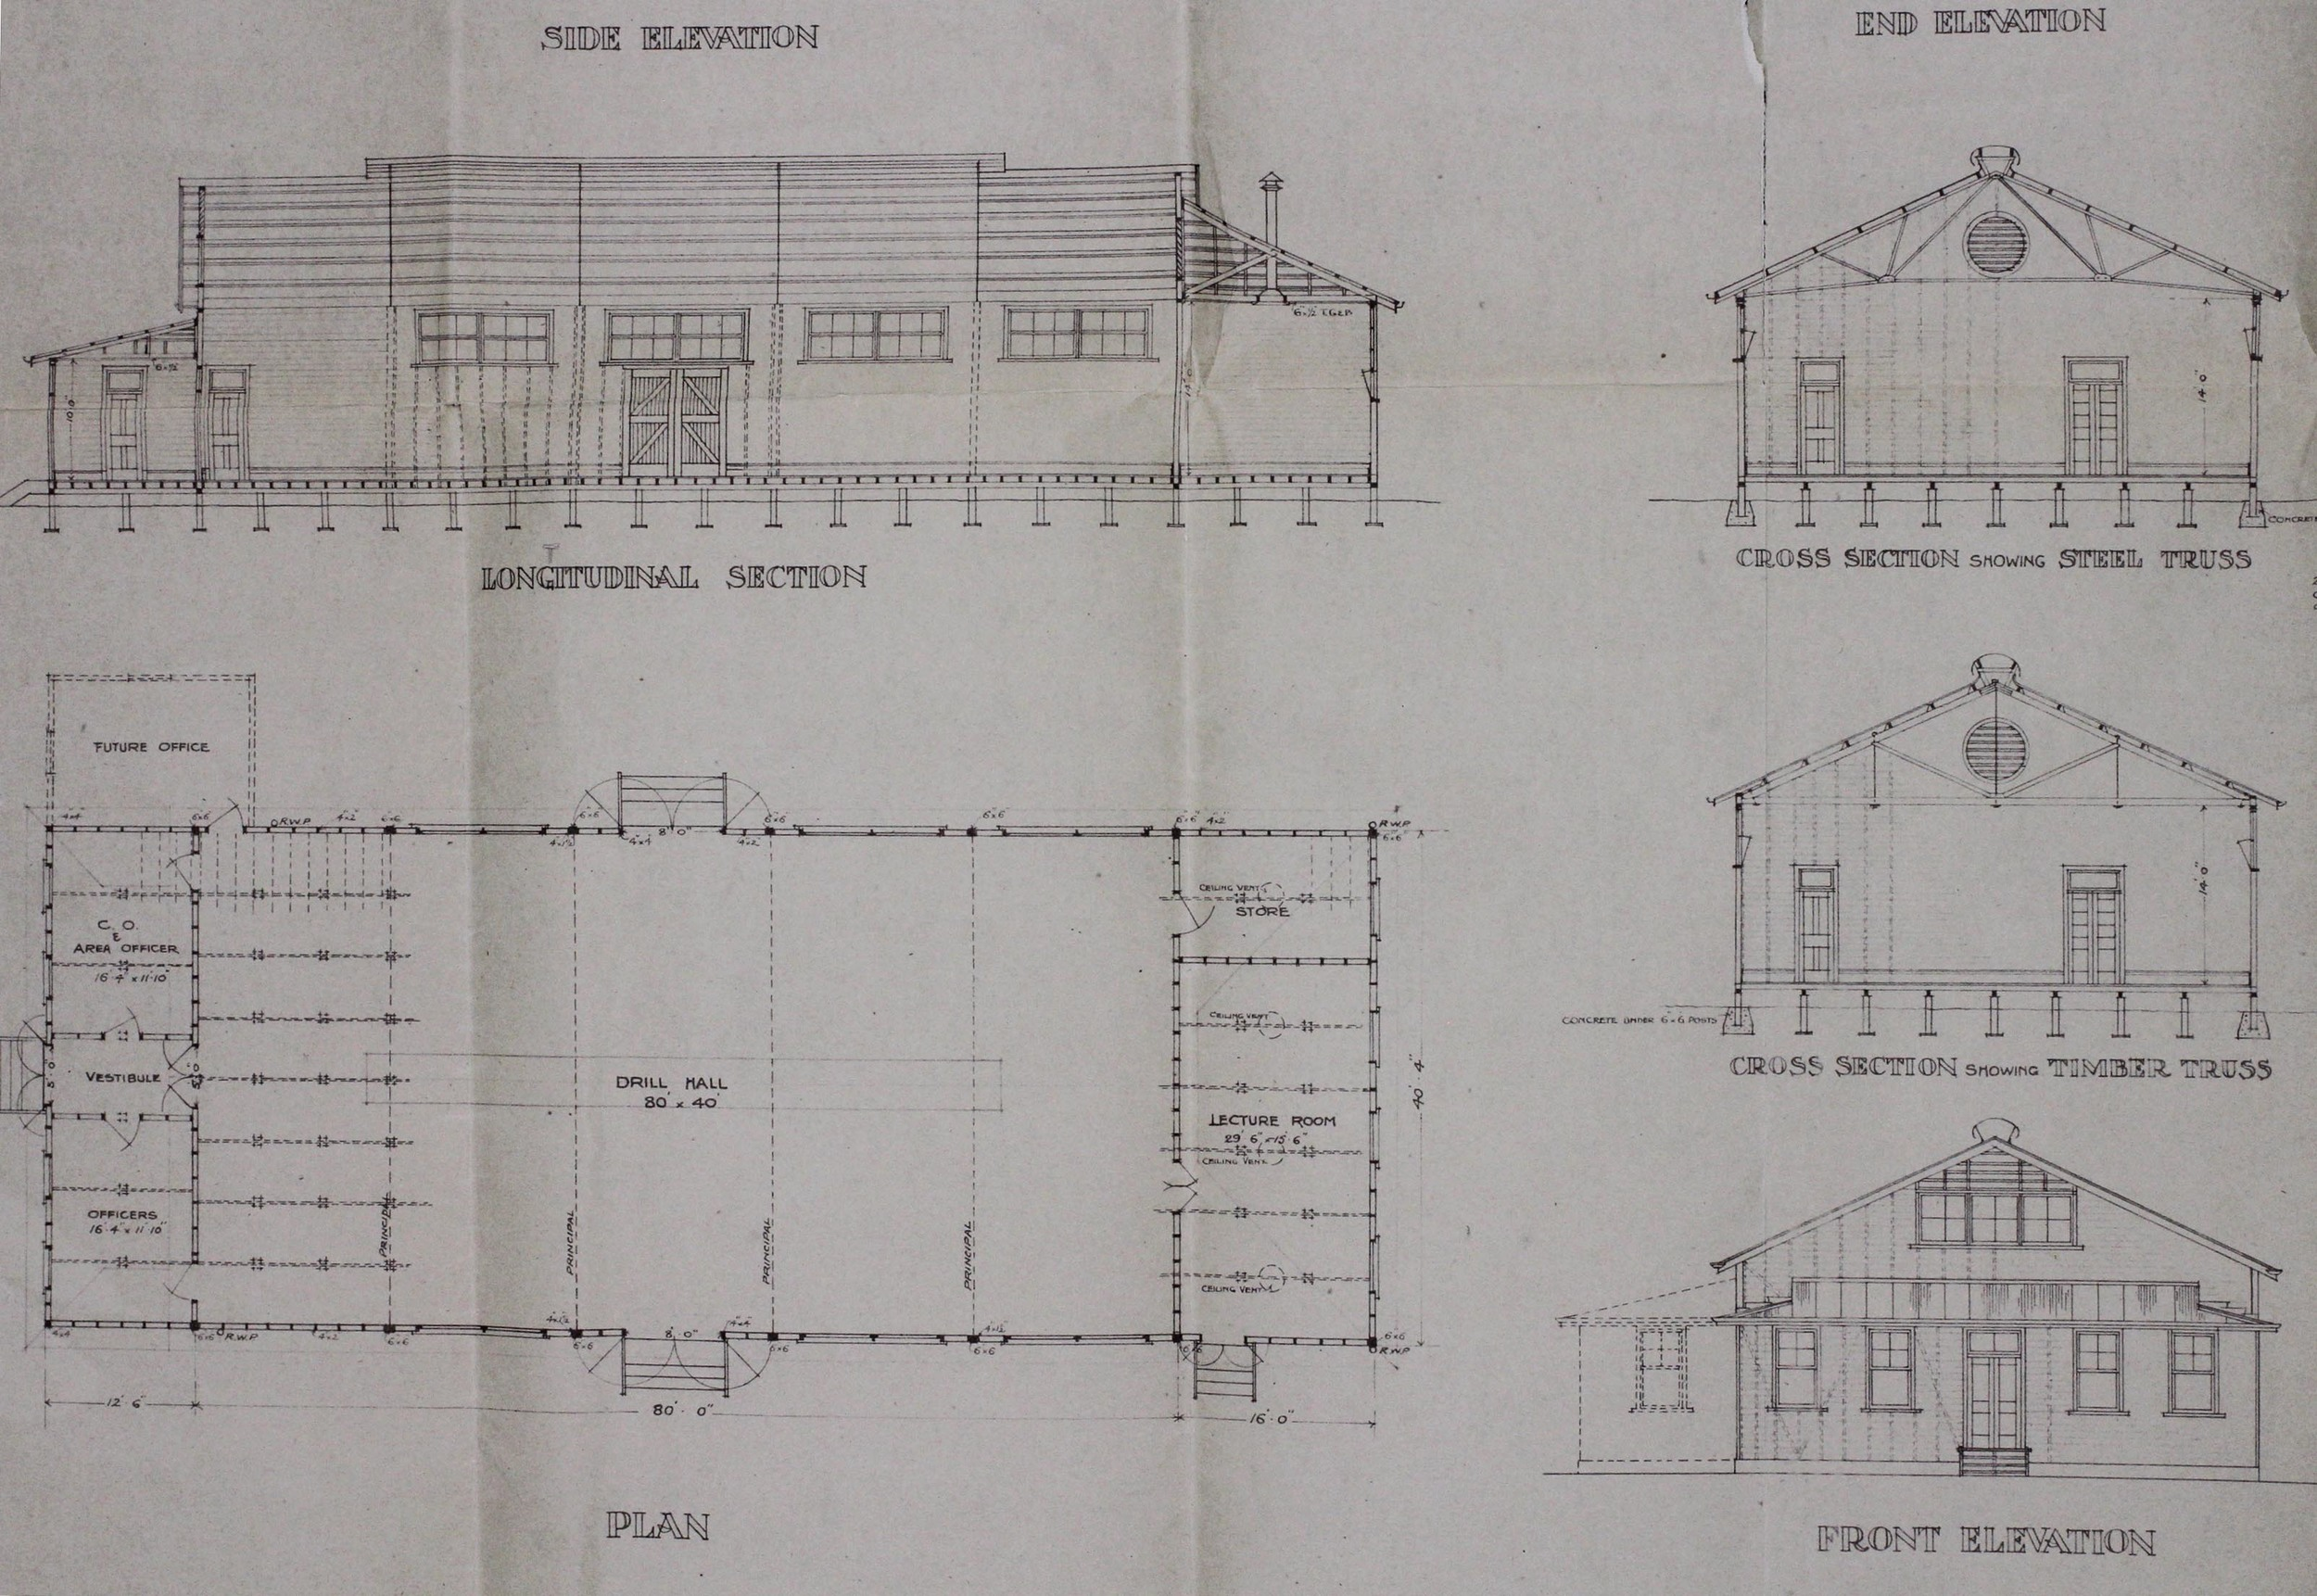 Footscray Drill Hall Plans 1913, MP1142/1, 55/230/44, NAA